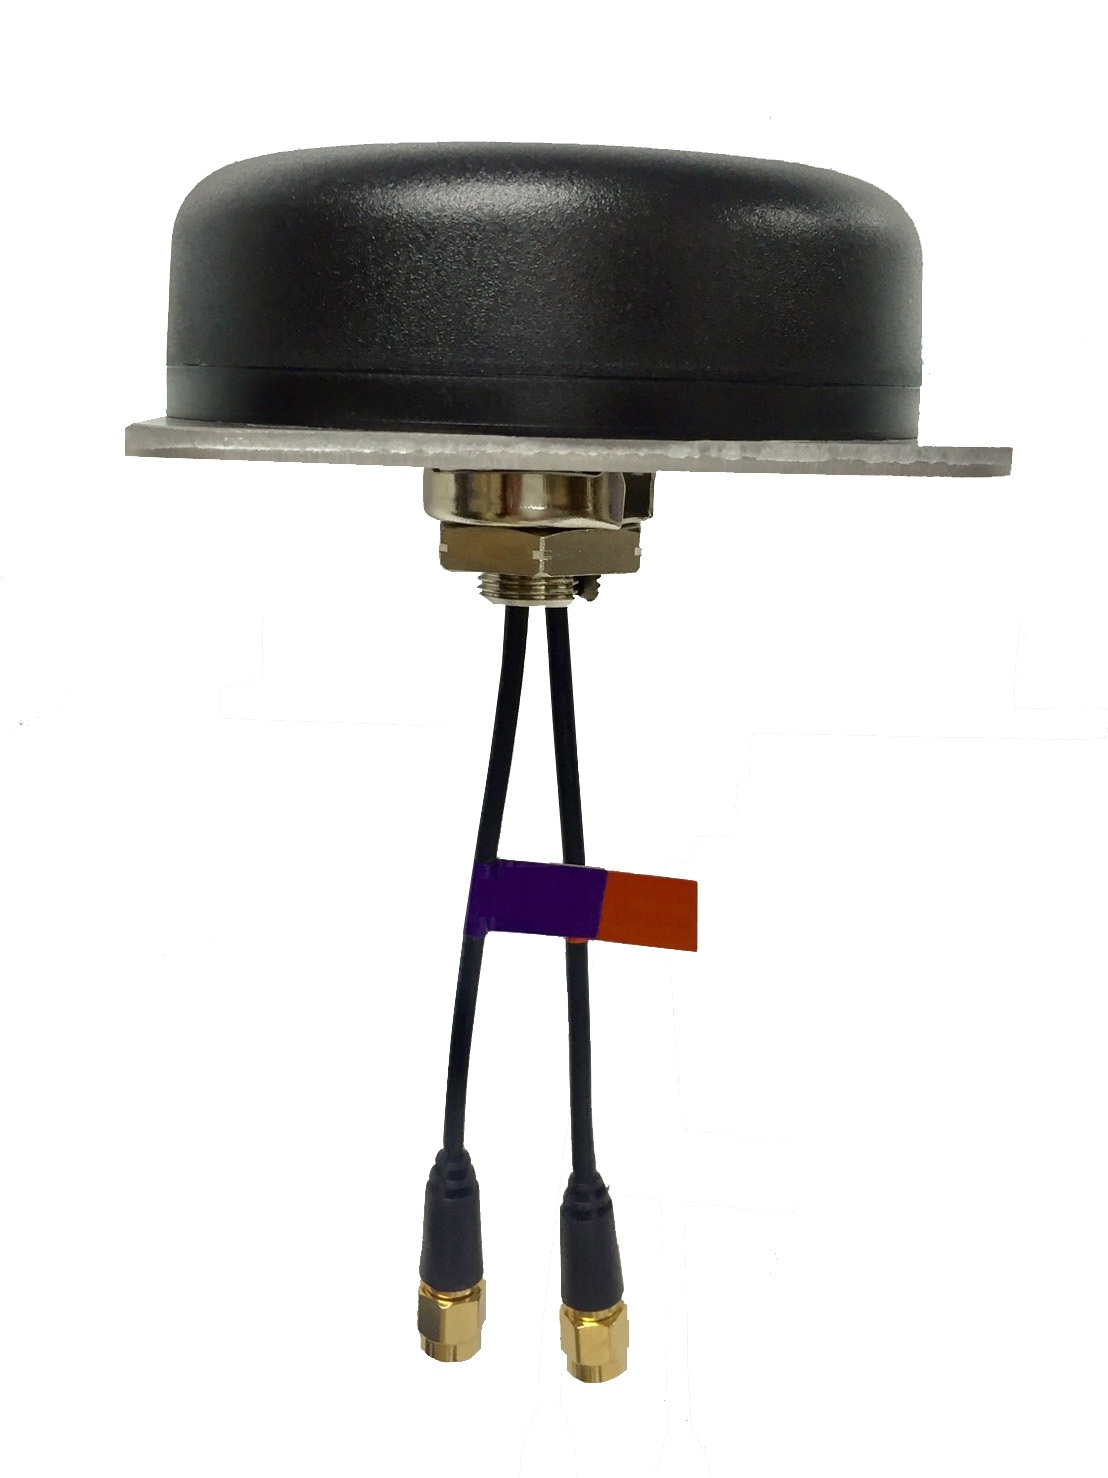 4x4 Pick Up Car Combined  Antennas for Car Electronic Accessories made by Chinmore Industry Co., LTD. 竣茂工業有限公司 - MatchSupplier.com